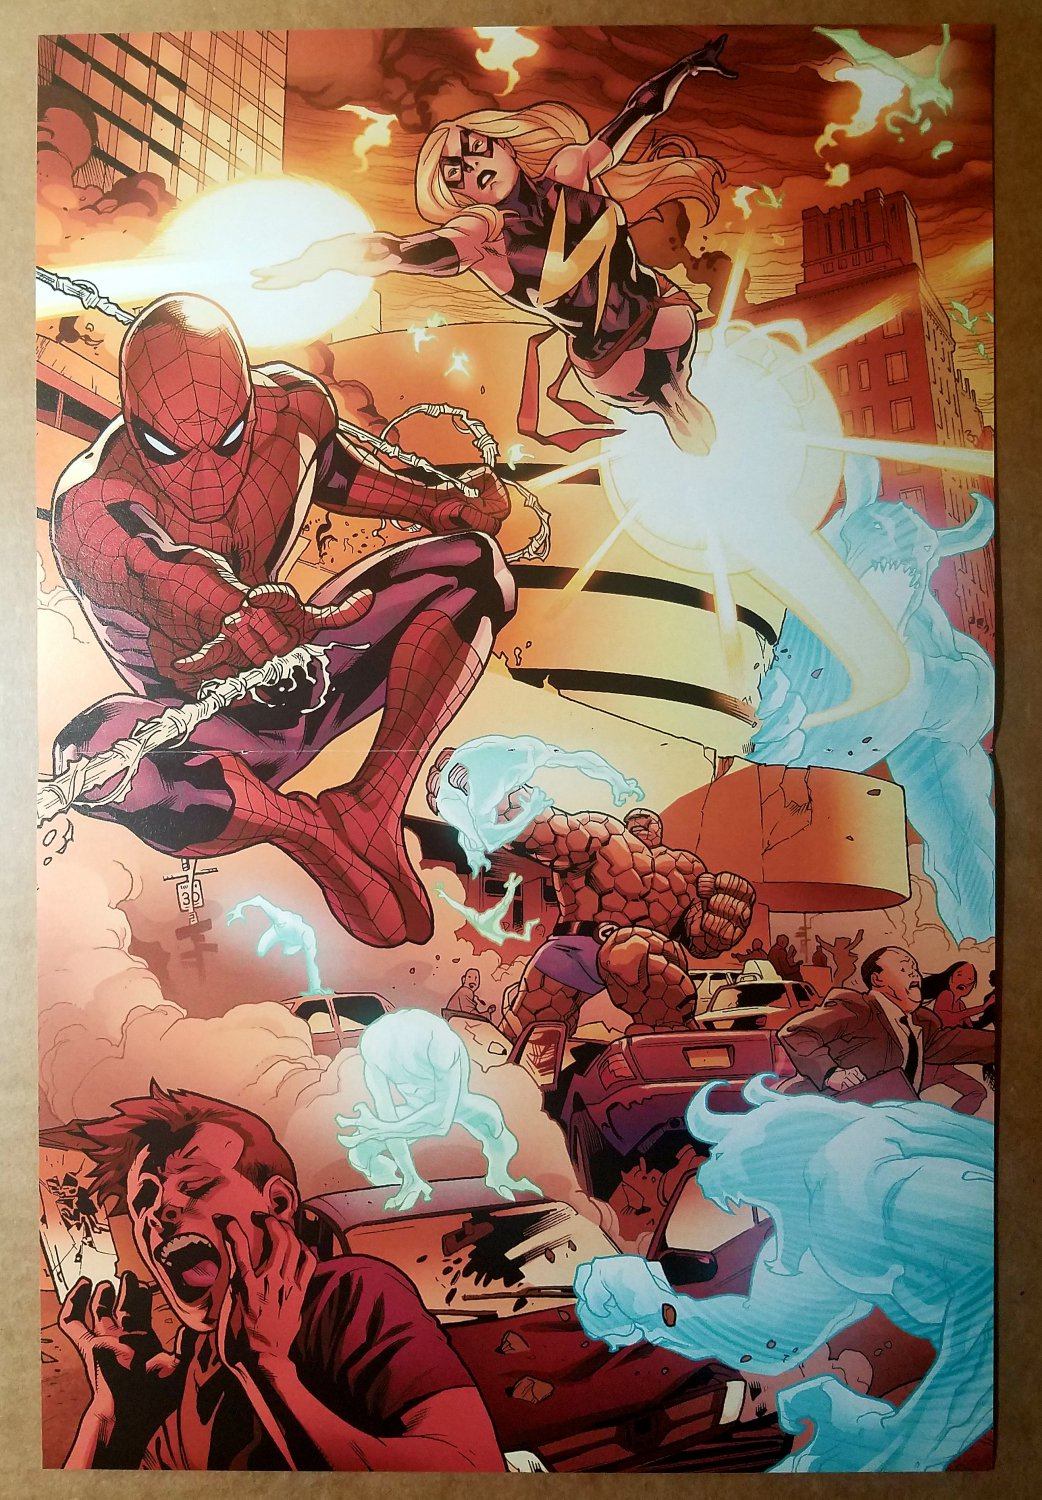 Spider-Man Ms Marvel The Thing Marvel Comics Poster by Stuart Immonen